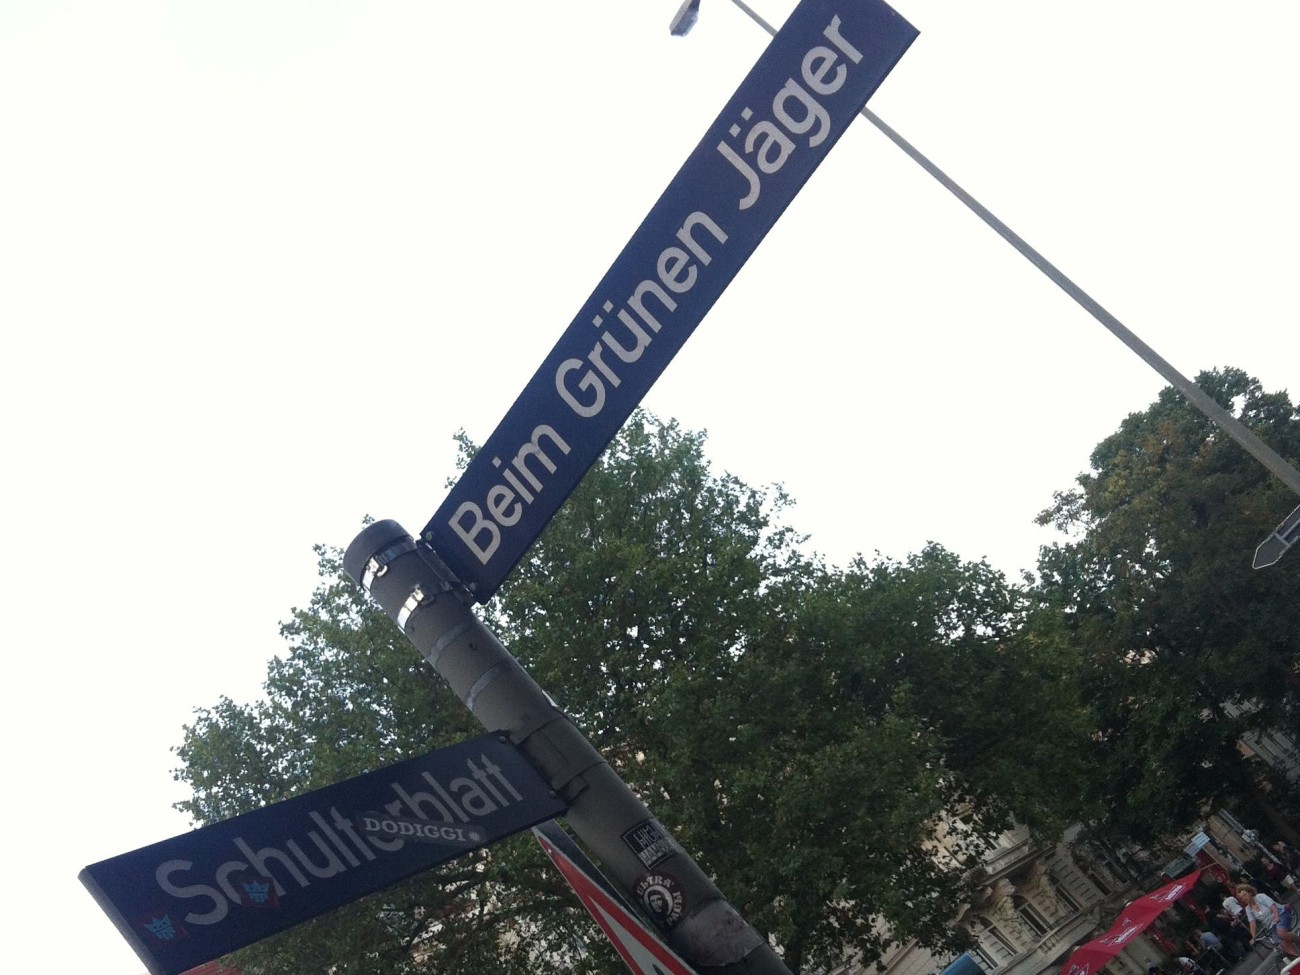 Where the streets have funny names